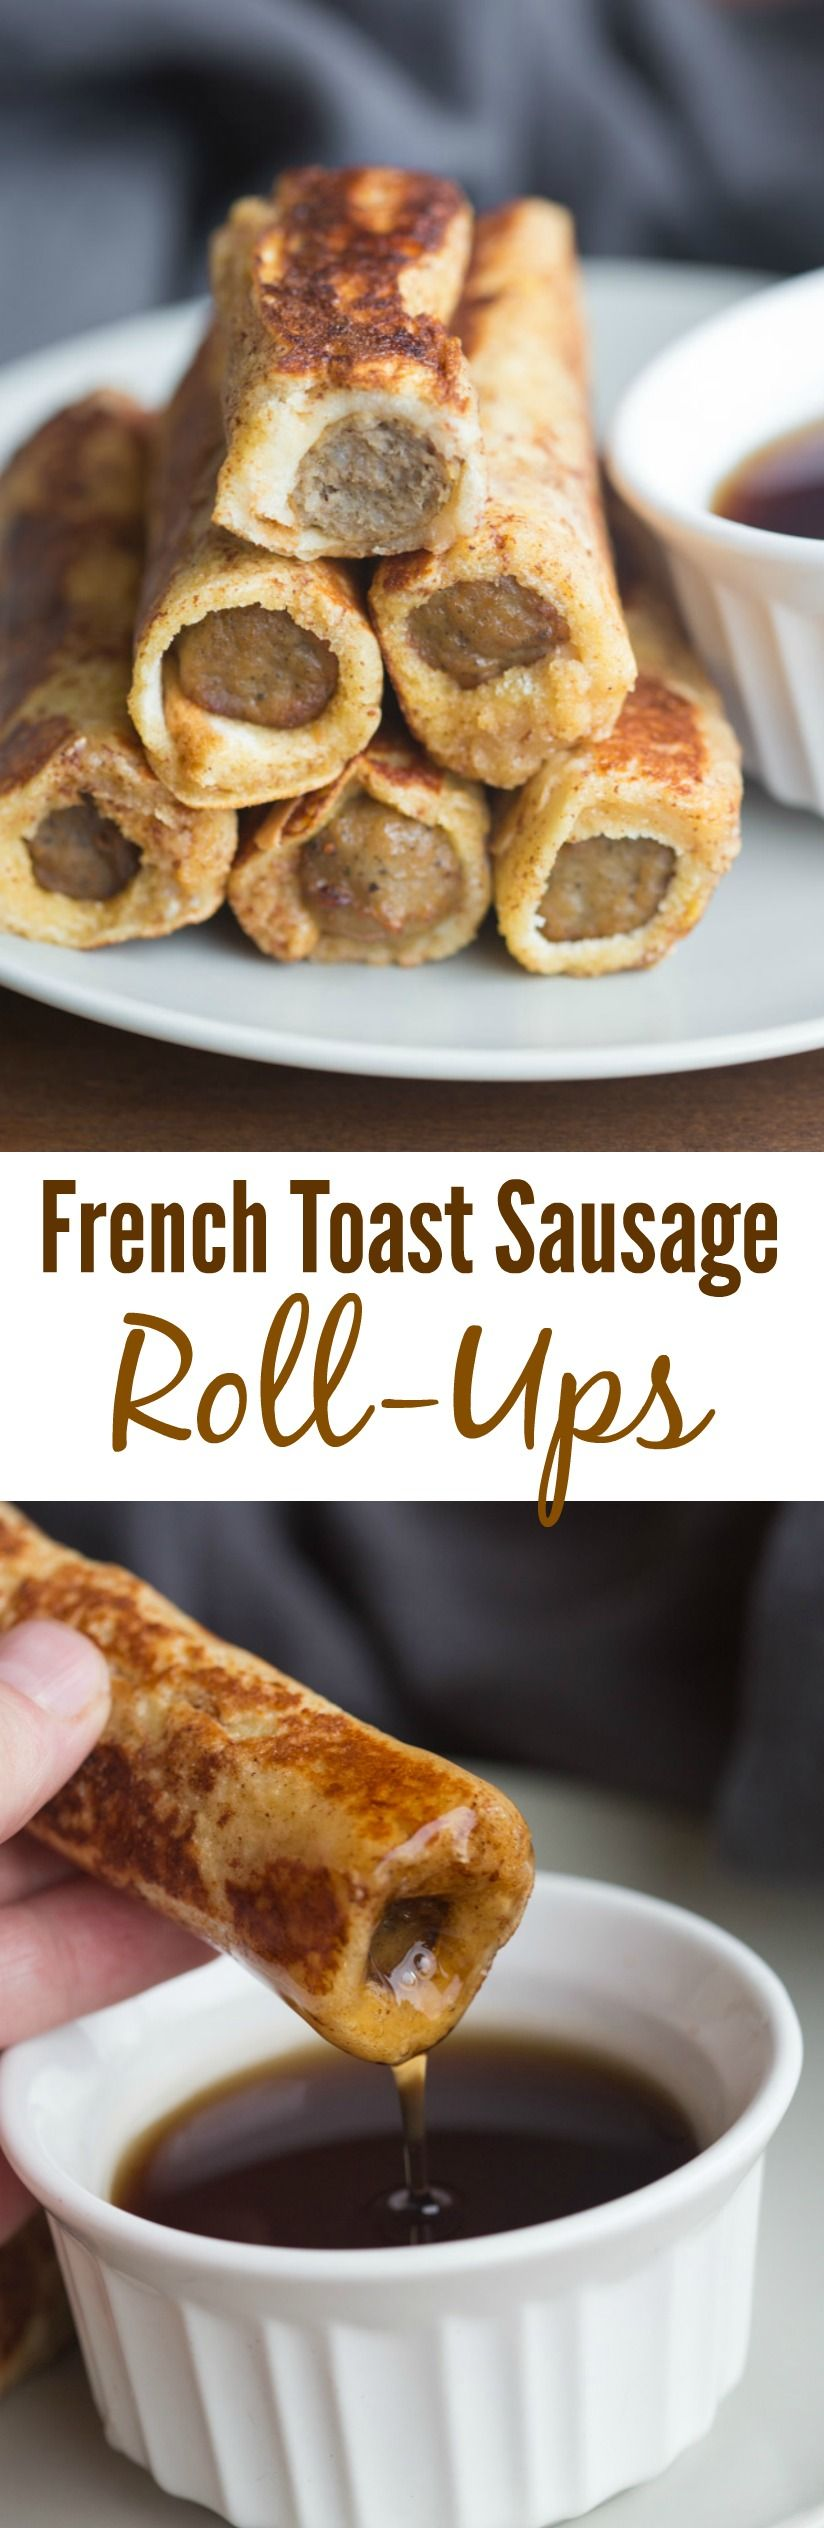 French Toast Sausage Roll-Ups #frenchtoastrollups